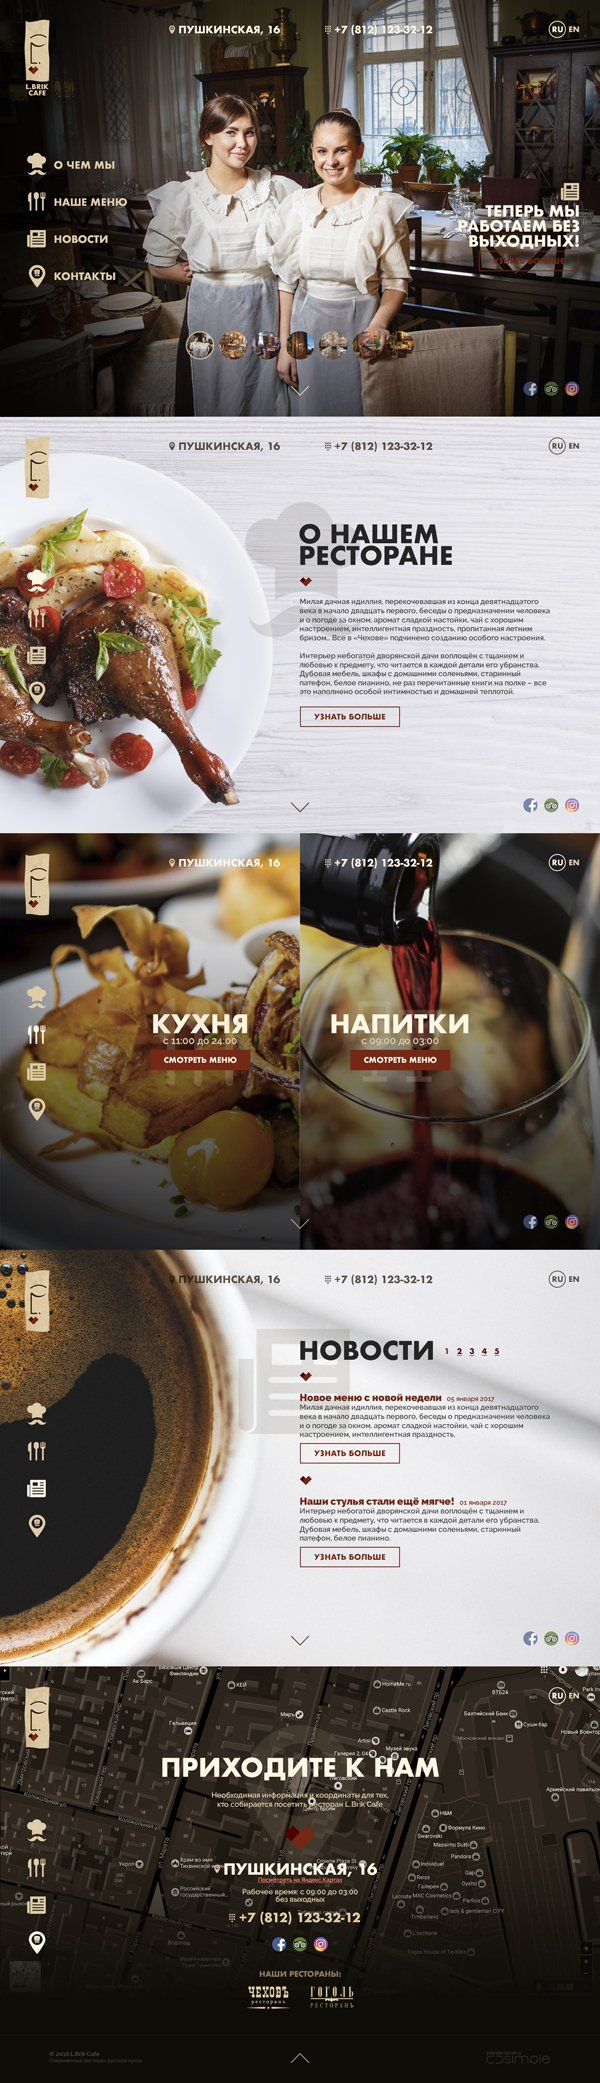 L.Brik Cafe. Website design for the restaurant of modern Russian cuisine